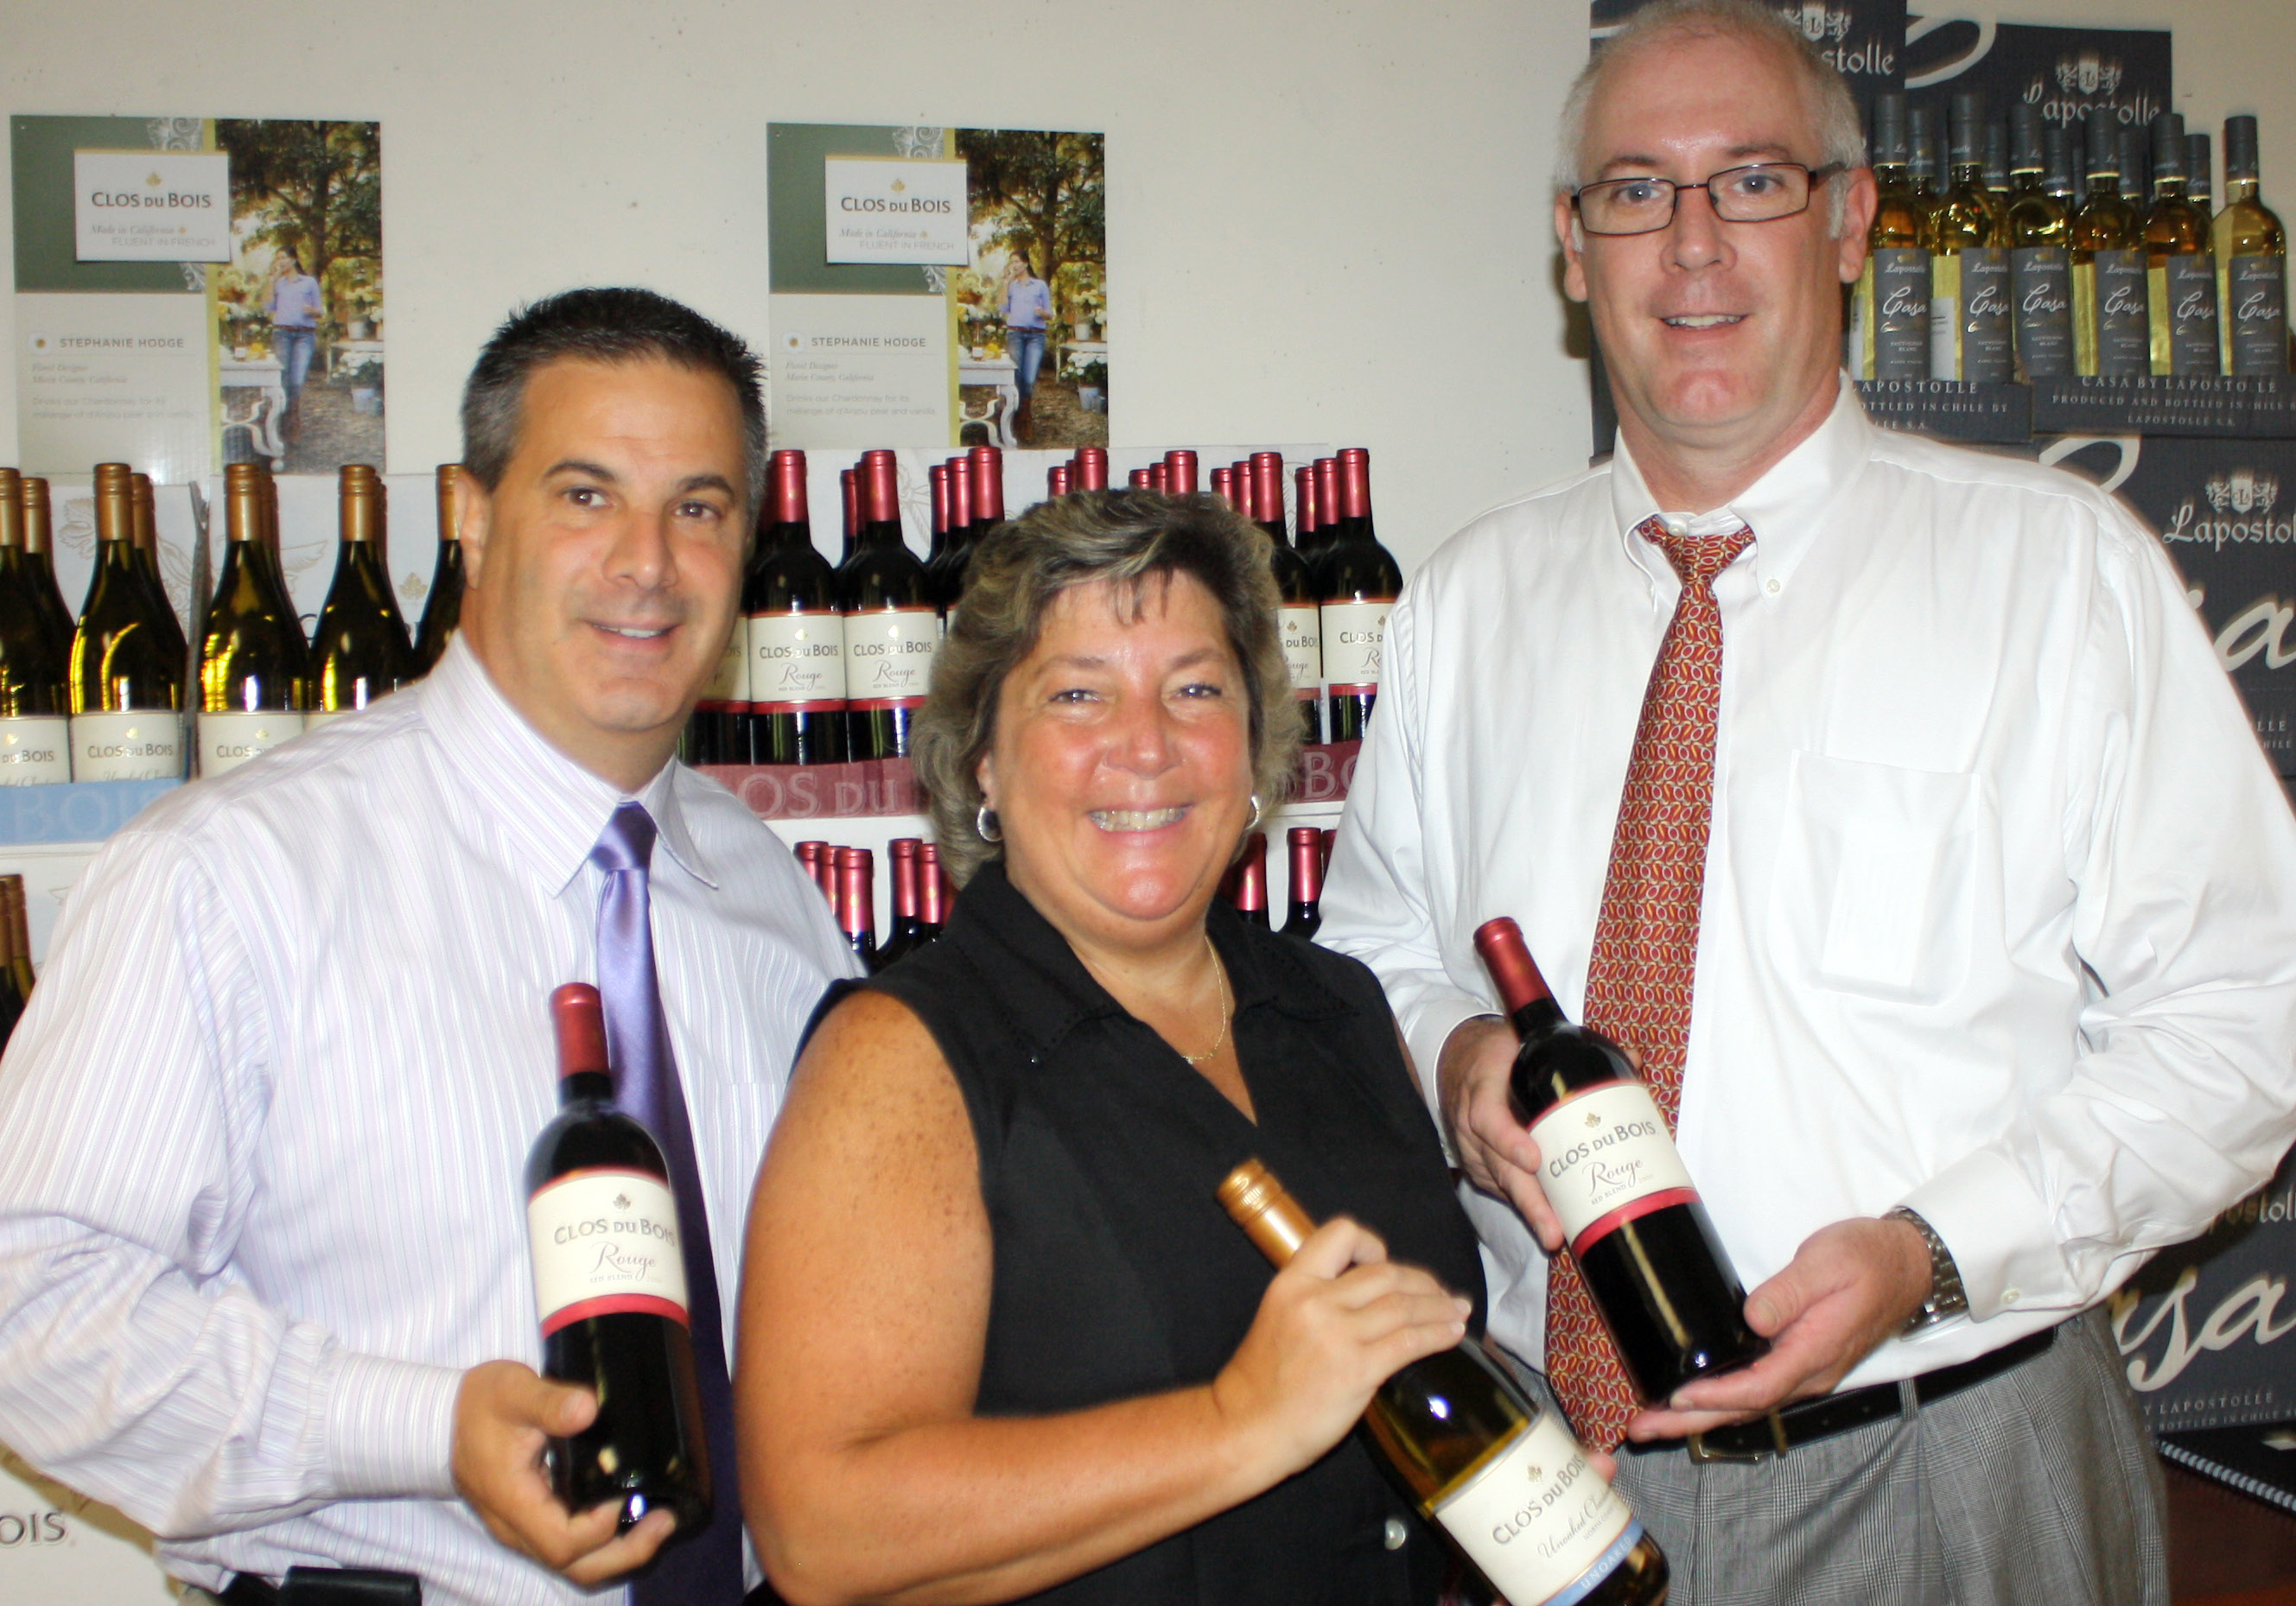 AROUND TOWN: Clos du Bois Debuts Two New Wines